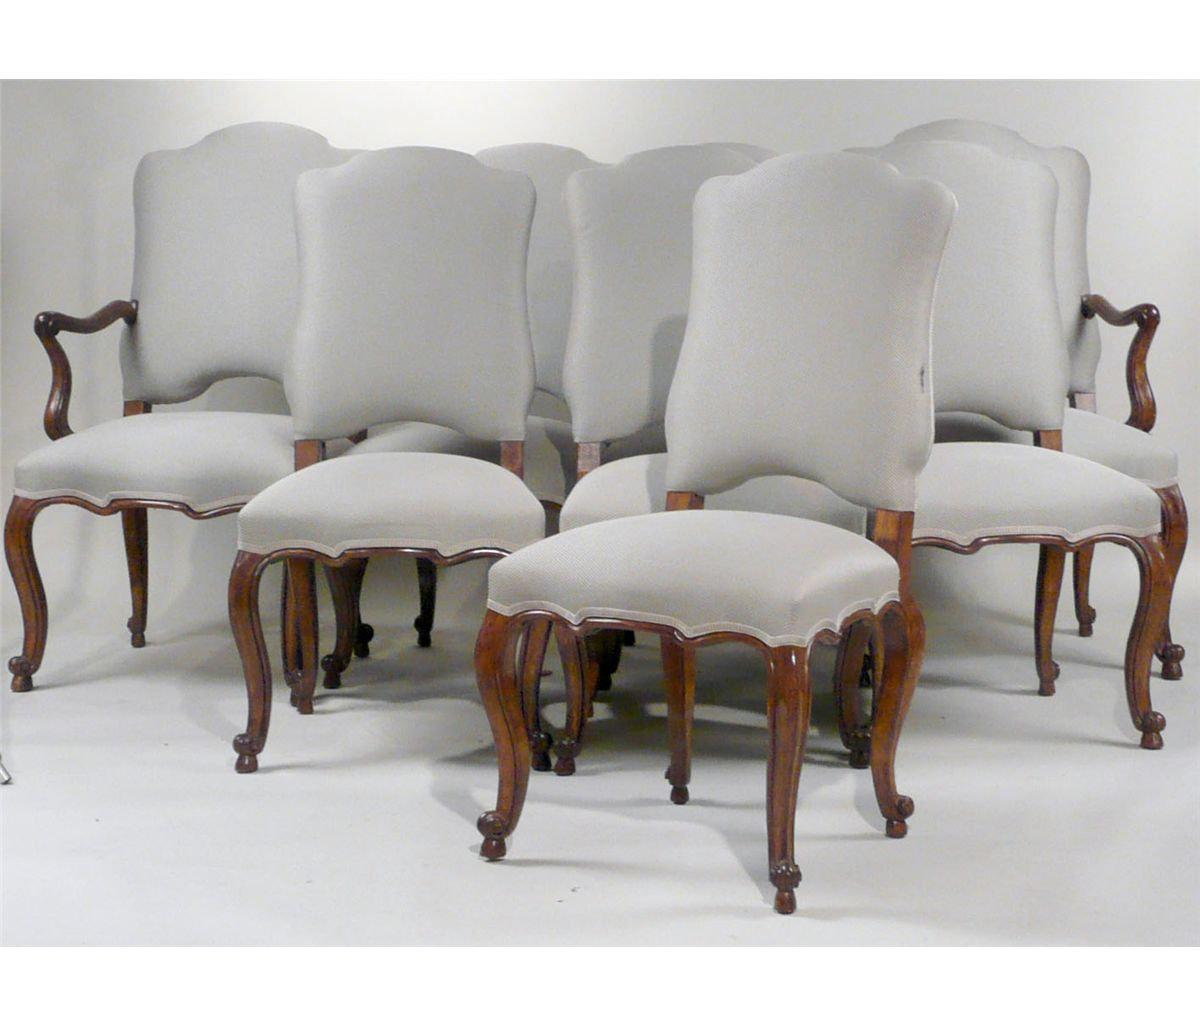 Eight Minton Spidell Louis Xv Style Dining Chairs 20th C N9enae Loading Zoom